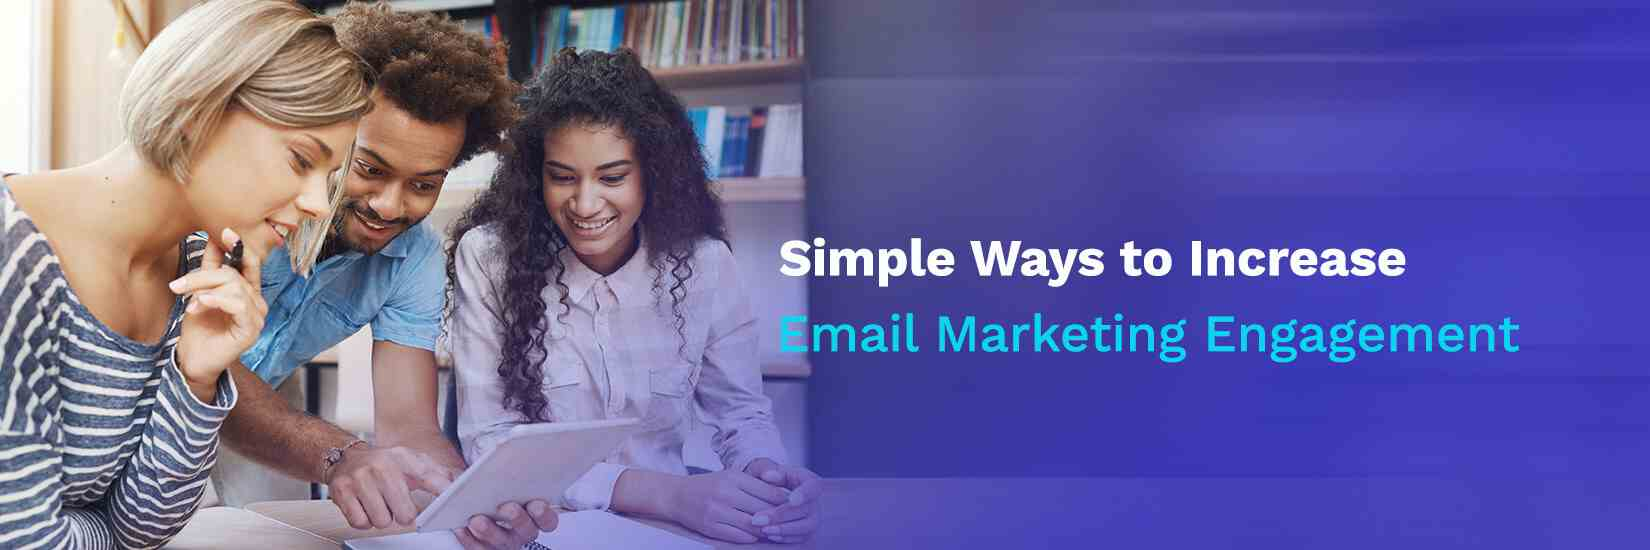 Simple Ways to Increase Email Marketing Engagement